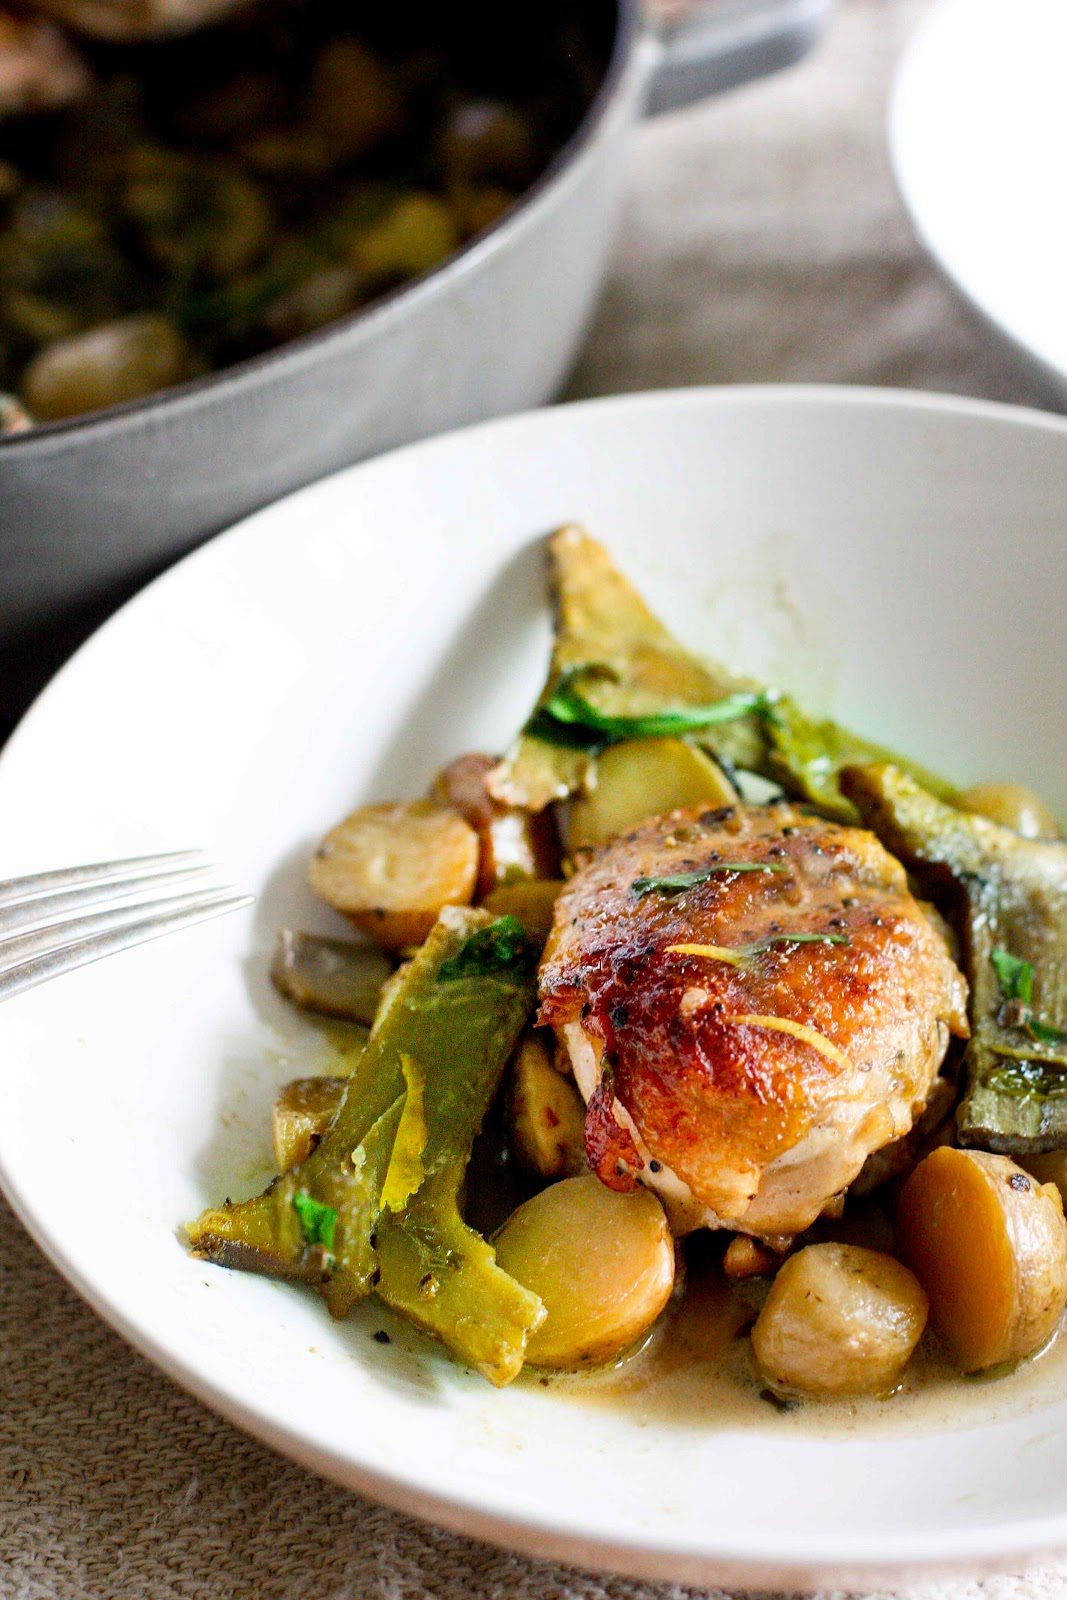 Braised Chicken With Artichokes And Pearl Onions Recipes — Dishmaps